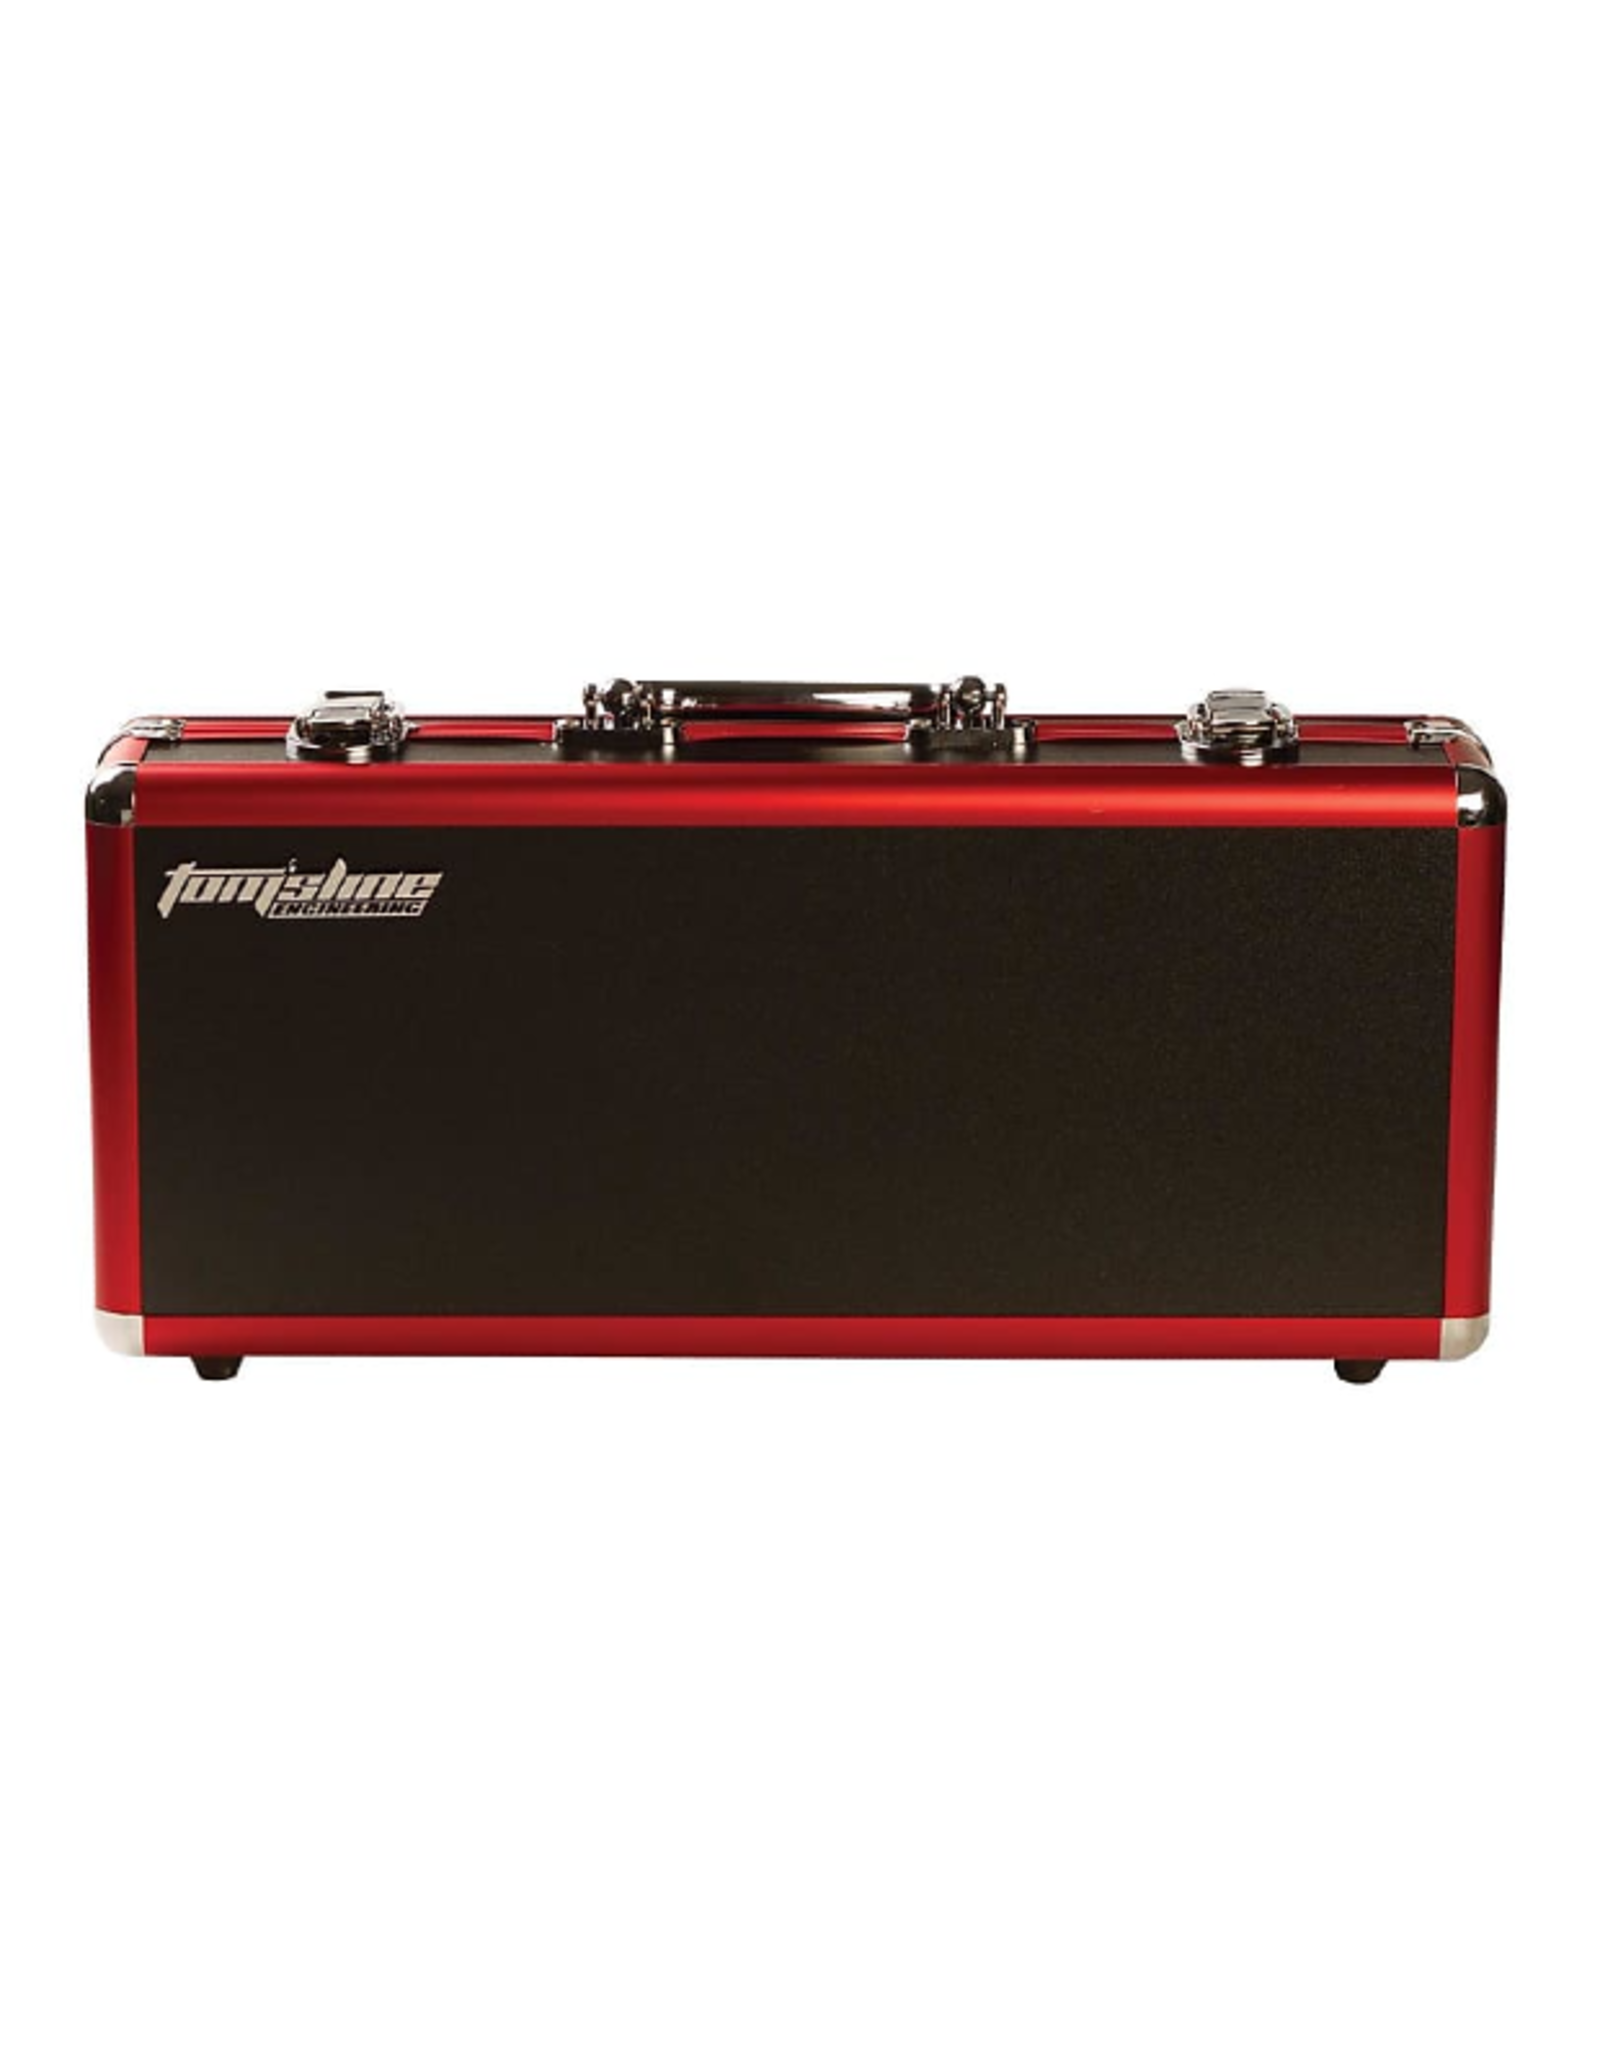 Tom'sline Tomsline APB-3 Mini Pedal Flight Case